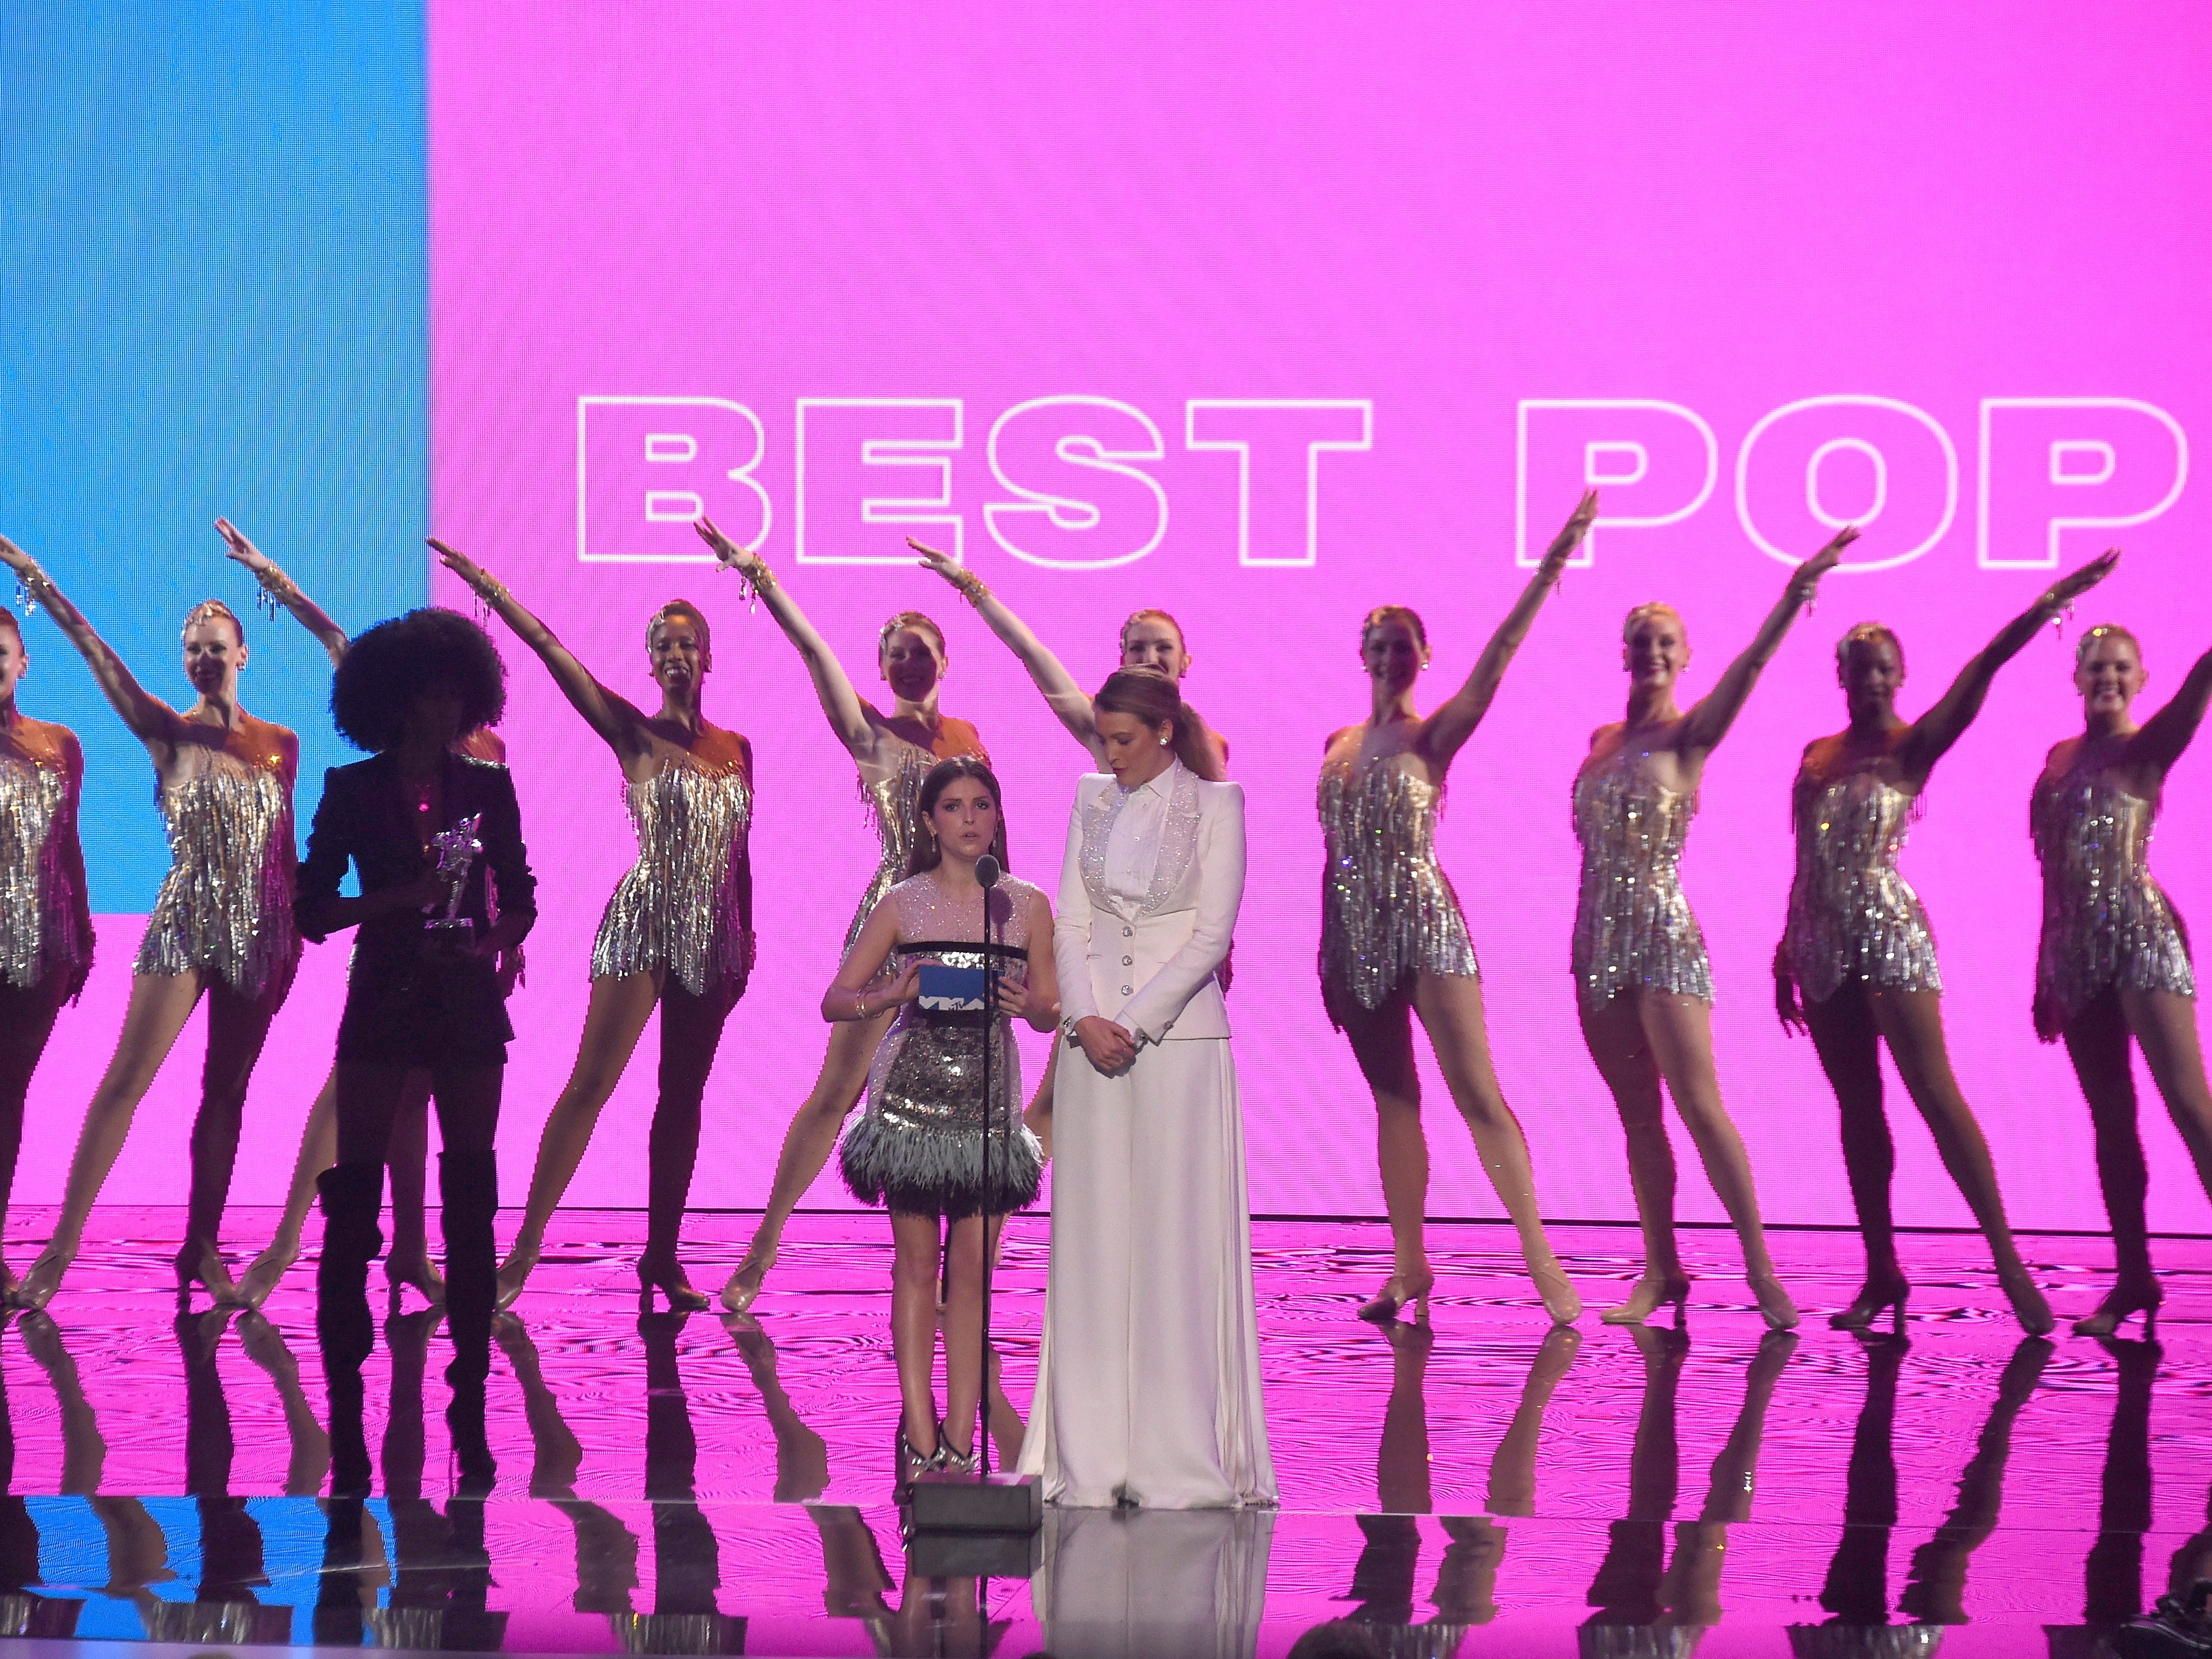 NEW YORK, NY - AUGUST 20:  Anna Kendrick, Blake Lively, and The Rockettes perform onstage during the 2018 MTV Video Music Awards at Radio City Music Hall on August 20, 2018 in New York City.  (Photo by Michael Loccisano/Getty Images for MTV) ORG XMIT: 775210297 ORIG FILE ID: 1020326468